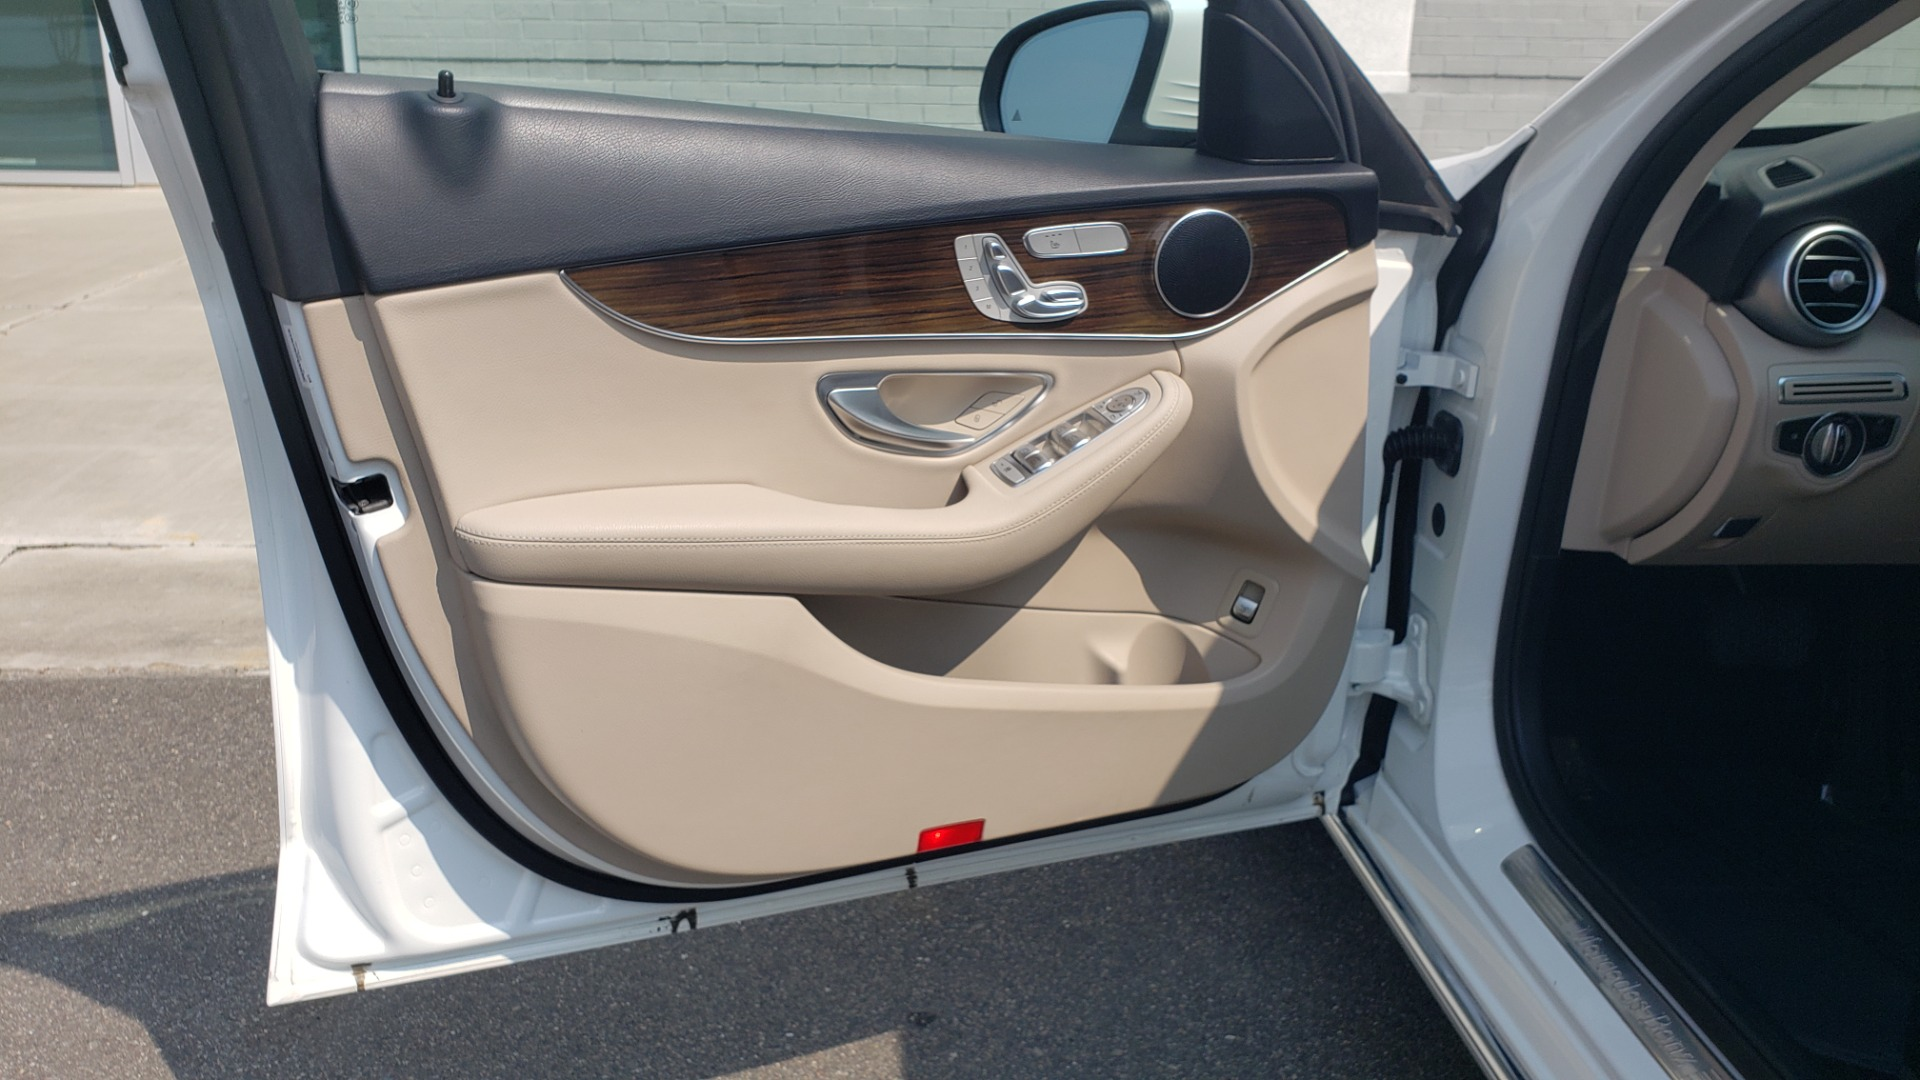 Used 2018 Mercedes-Benz C-CLASS C 300 PREMIUM / KEYLESS-GO / APPLE / PANO-ROOF / REARVIEW for sale $28,295 at Formula Imports in Charlotte NC 28227 29